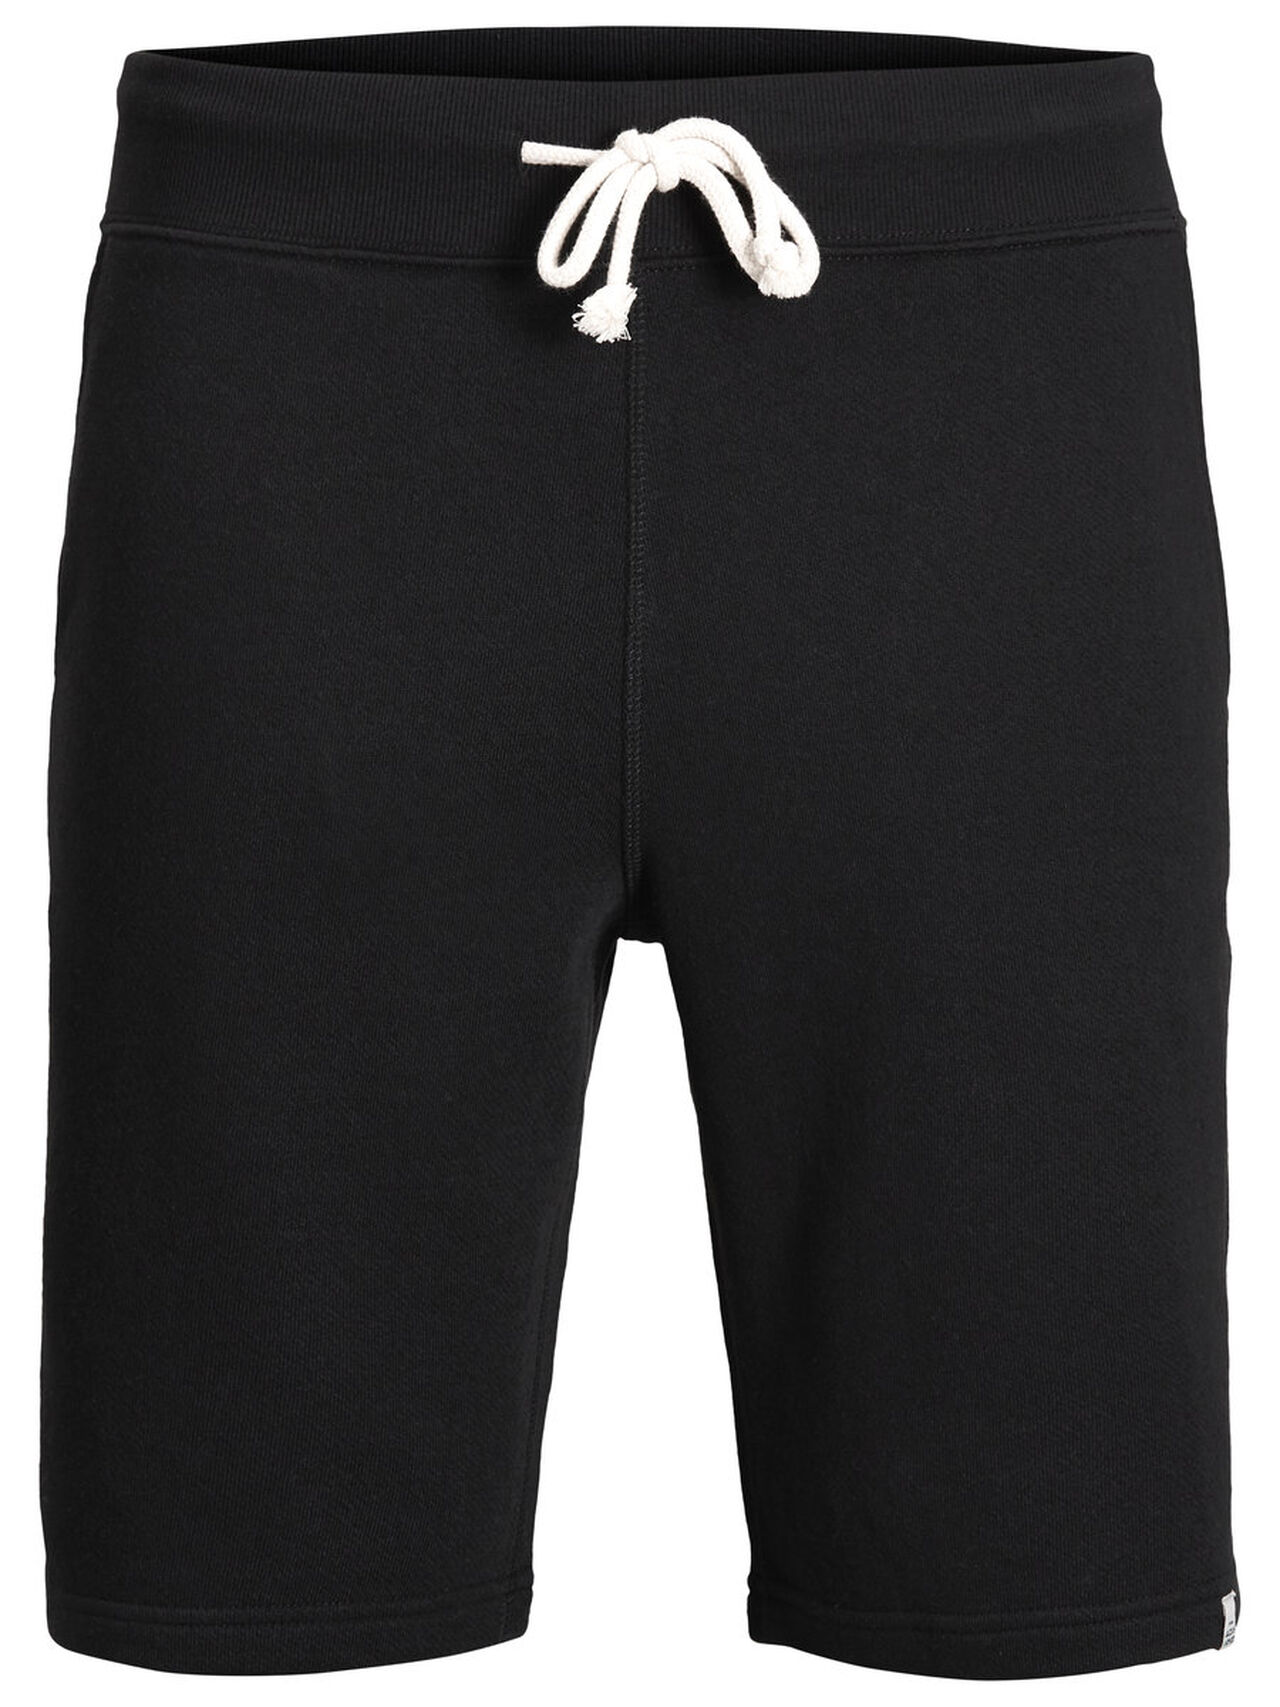 JACK & JONES Classic Shorts Men black